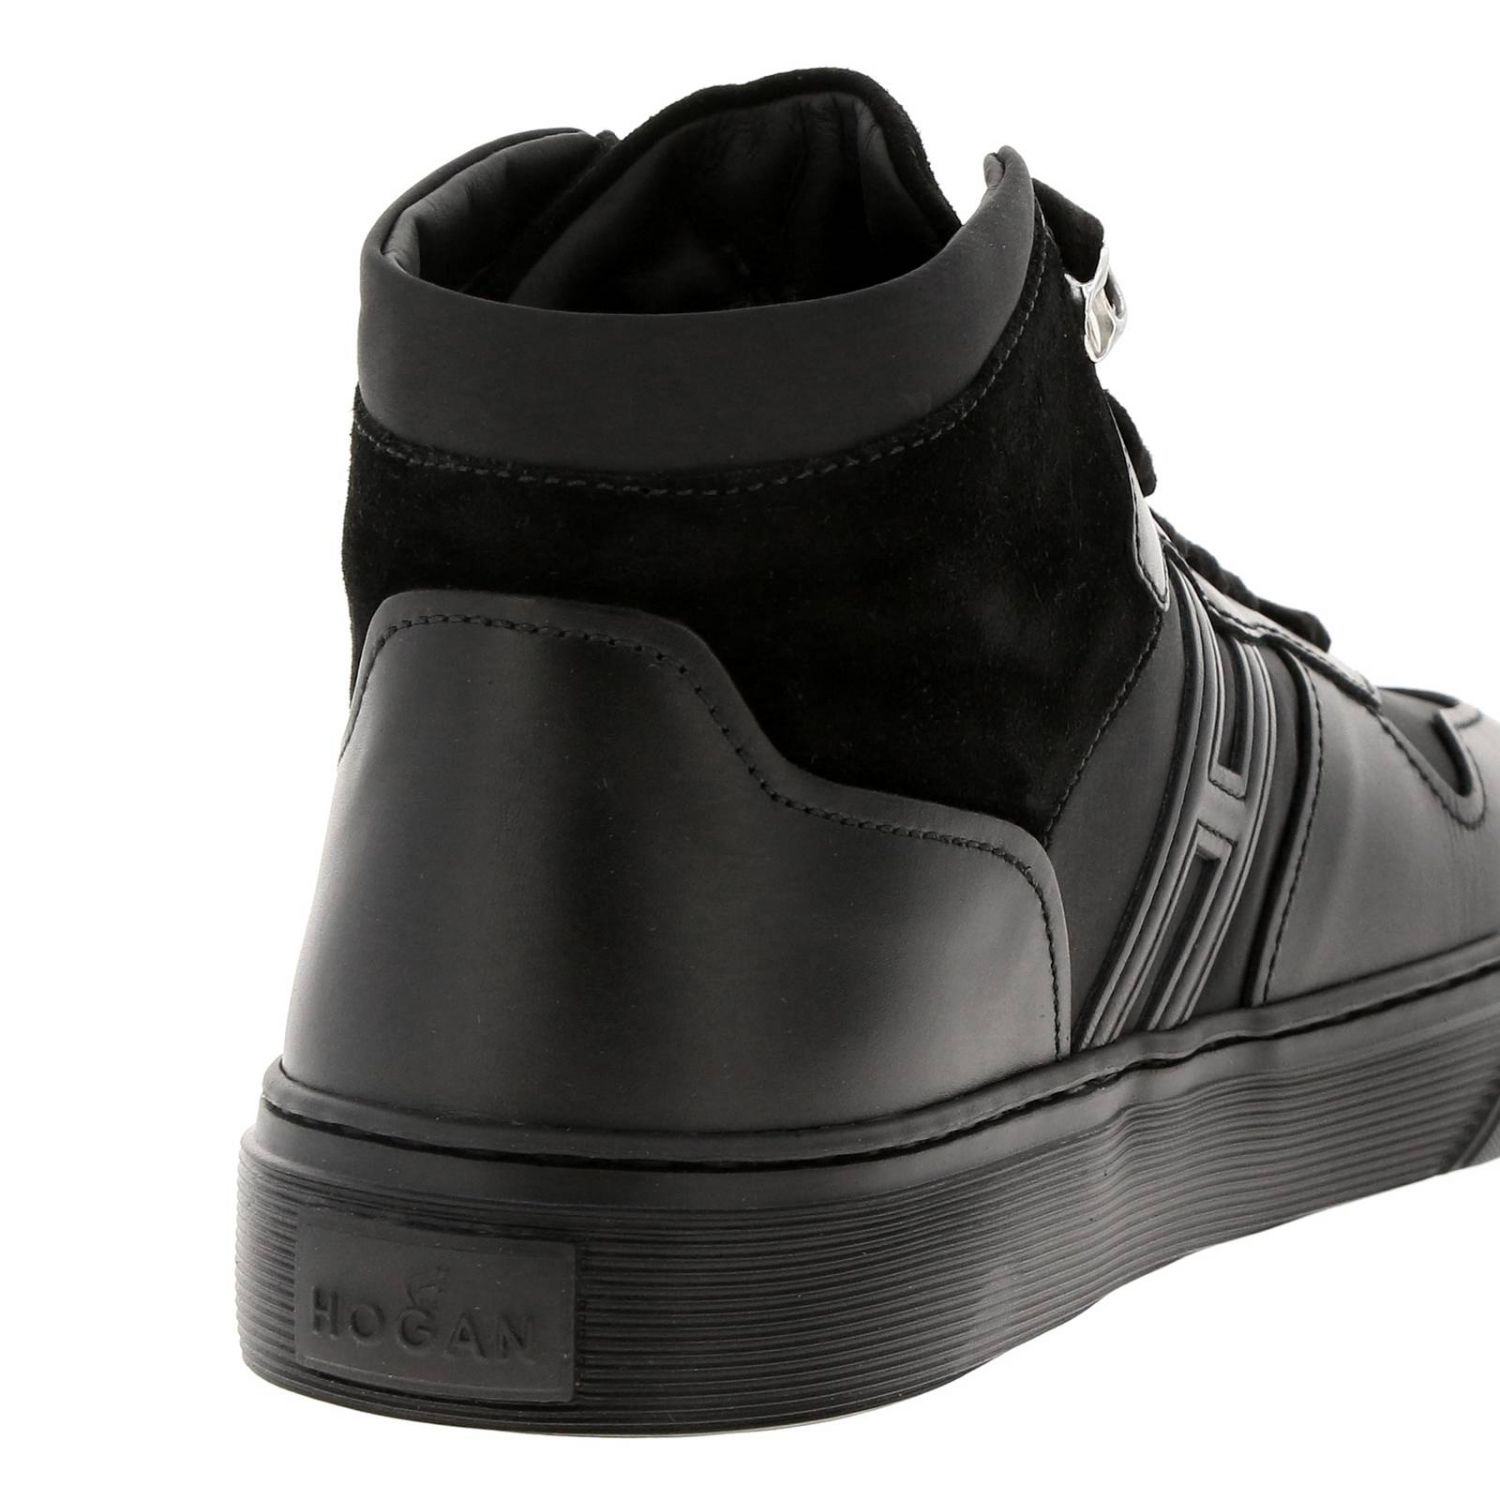 365 Sneakers Hogan Basket in leather and suede